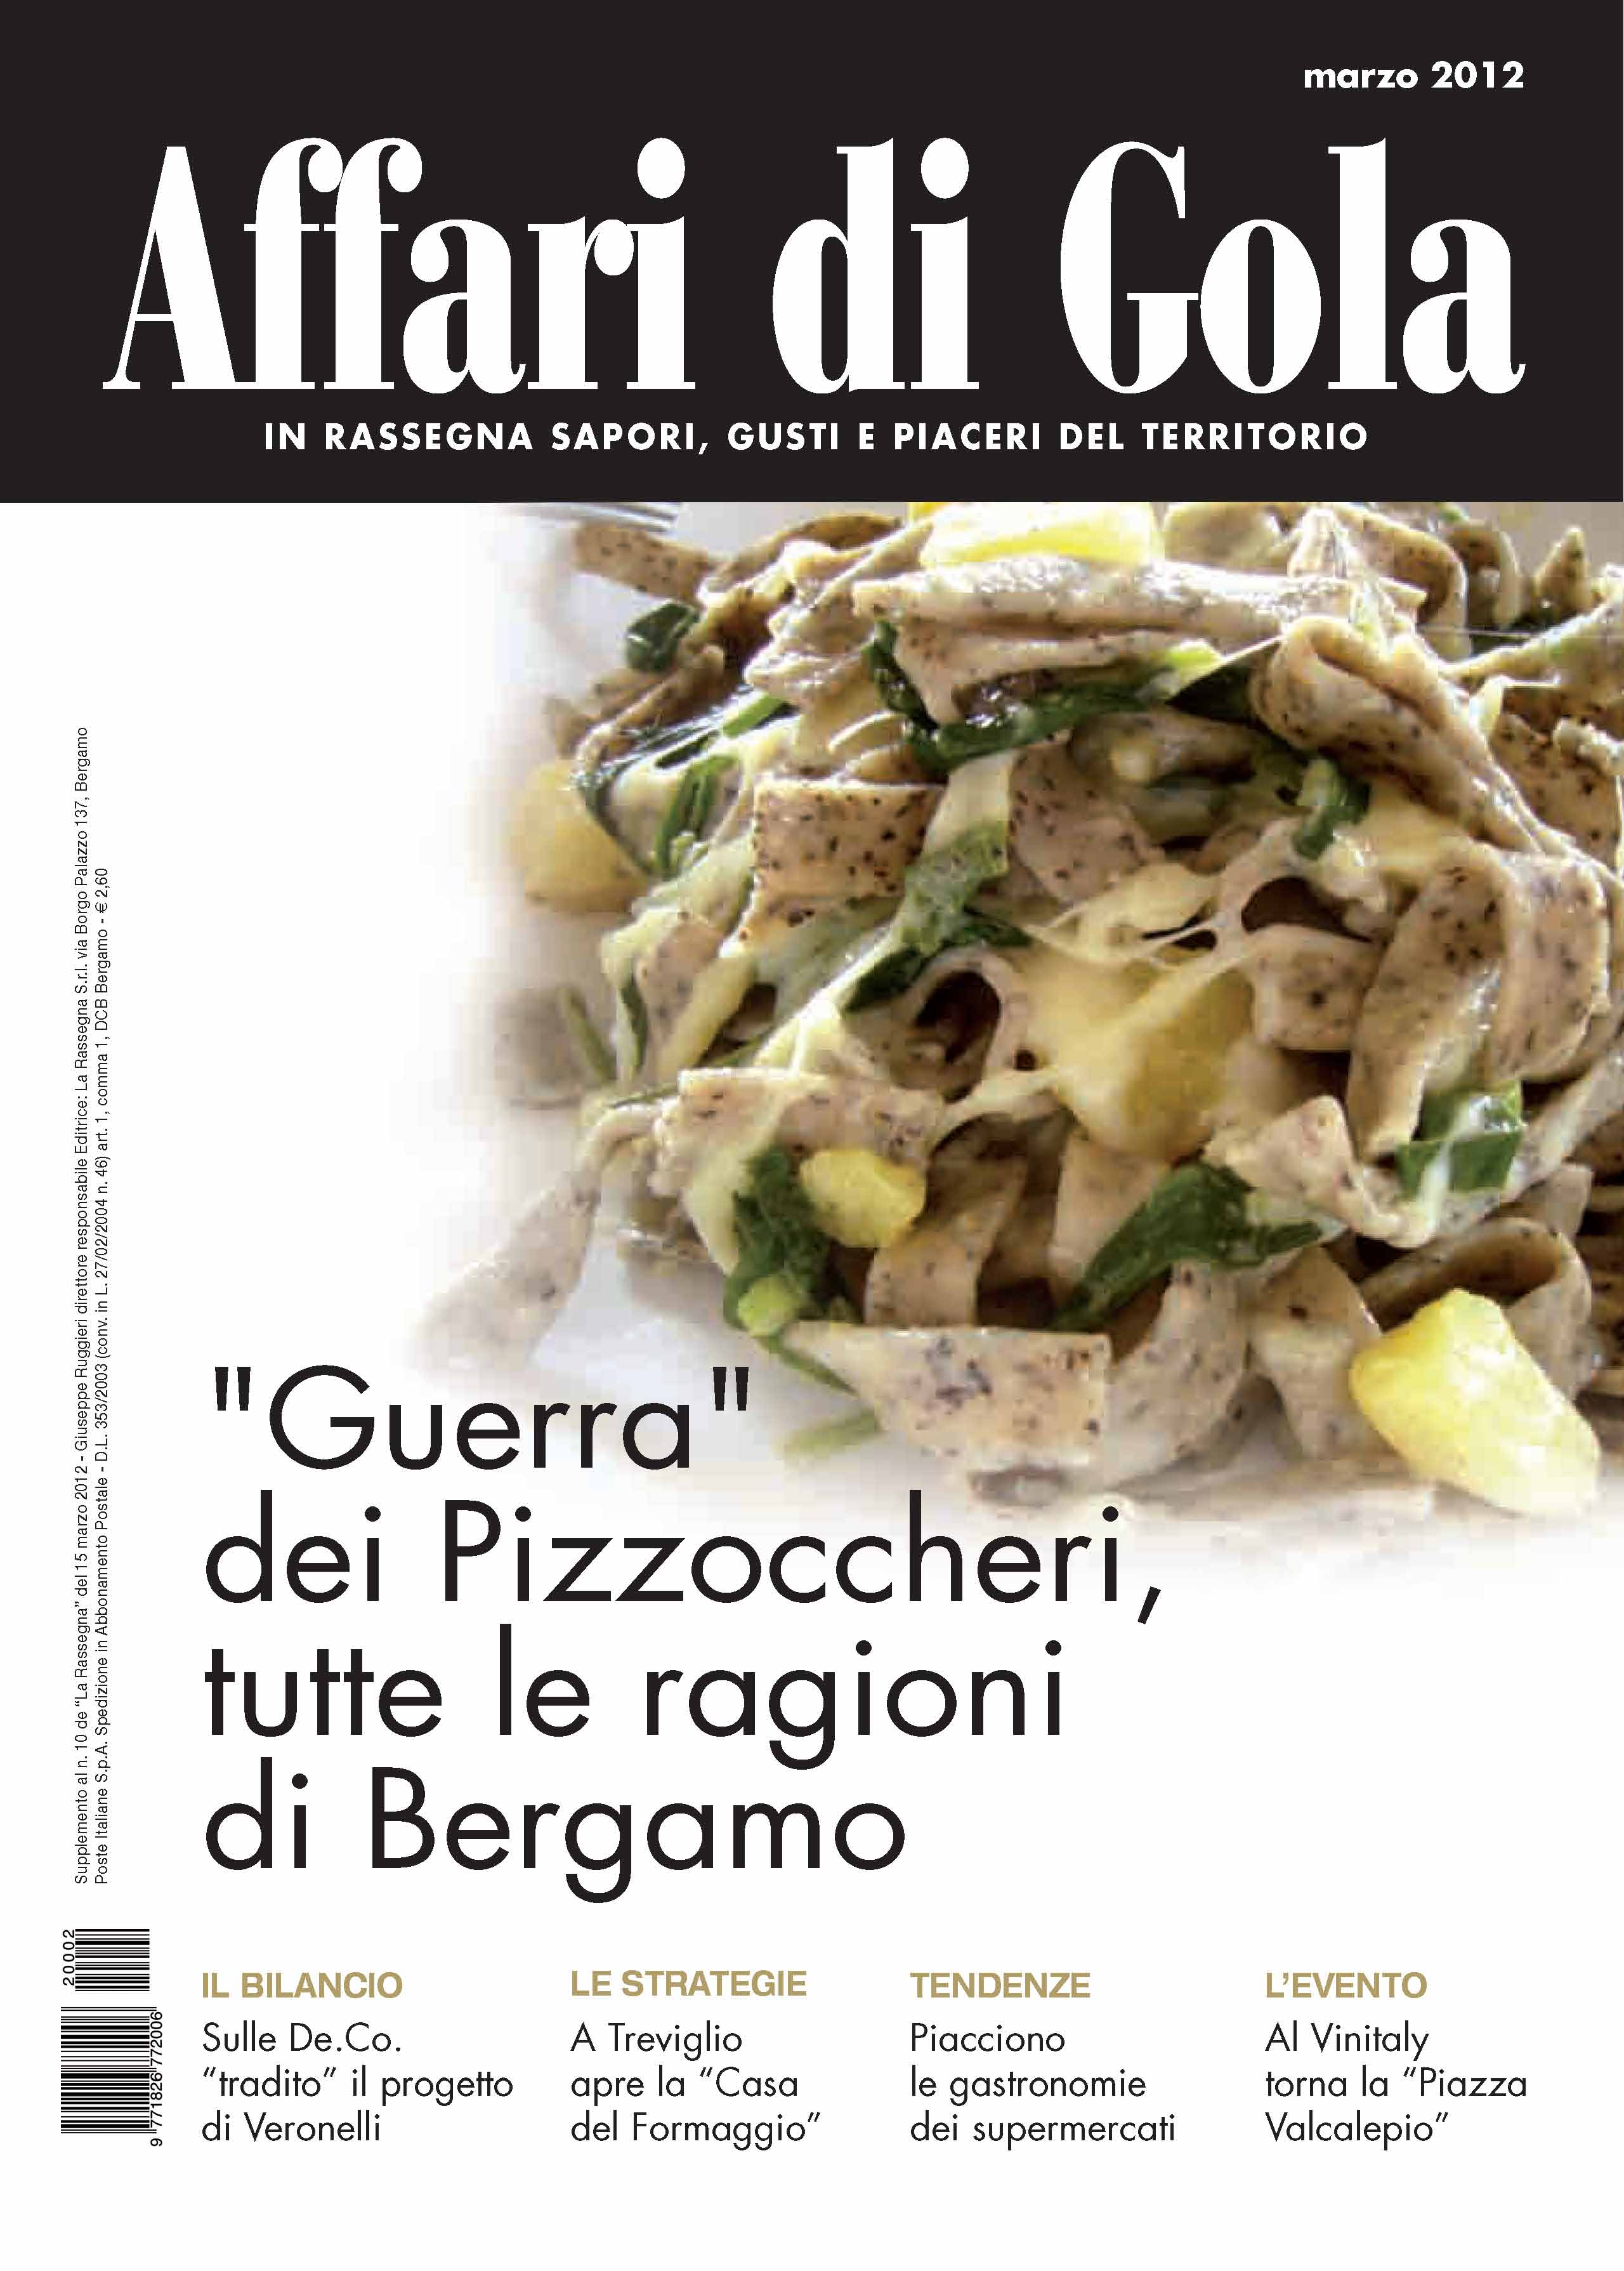 Affari di Gola Marzo 2012 free download